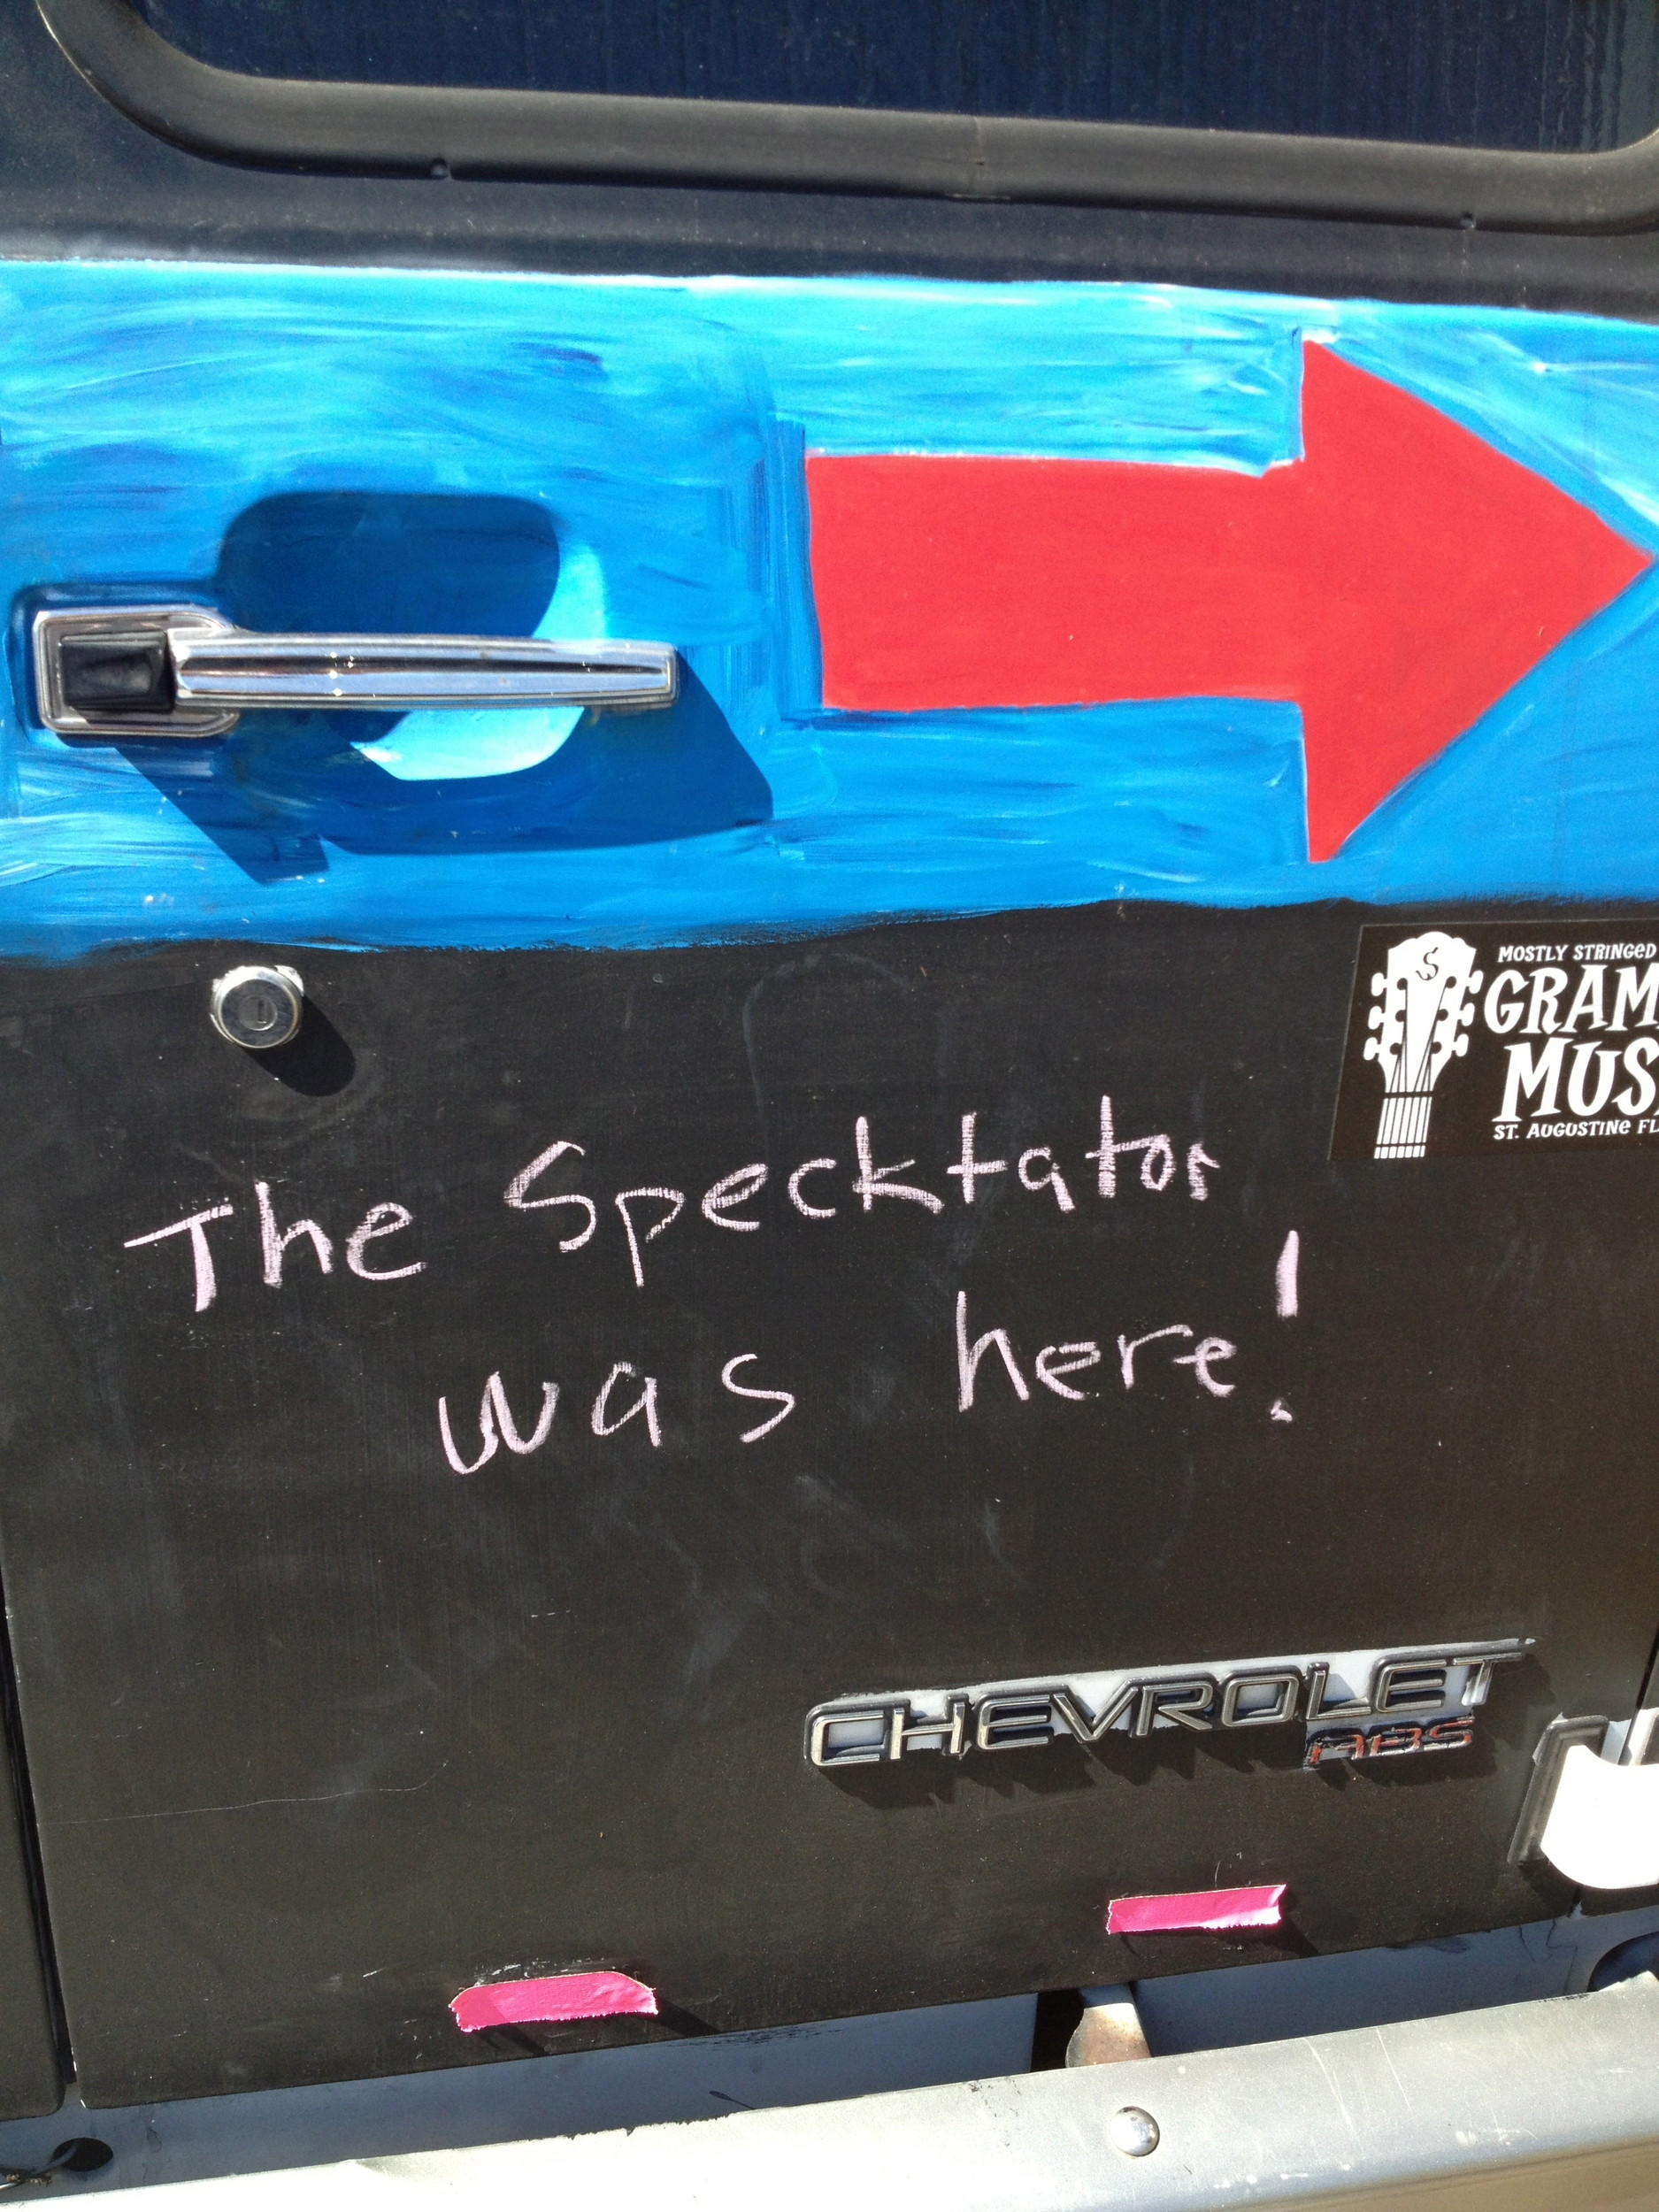 I sure hope that was chalk board paint before I vandalized this van parked outside.